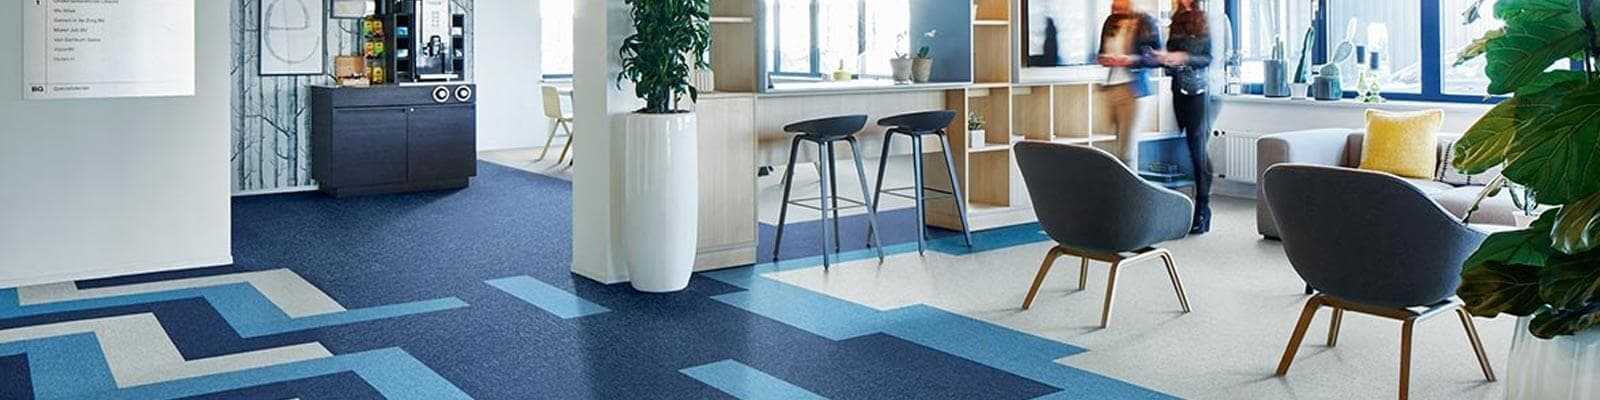 Commercial Carpet Tiles Flooring